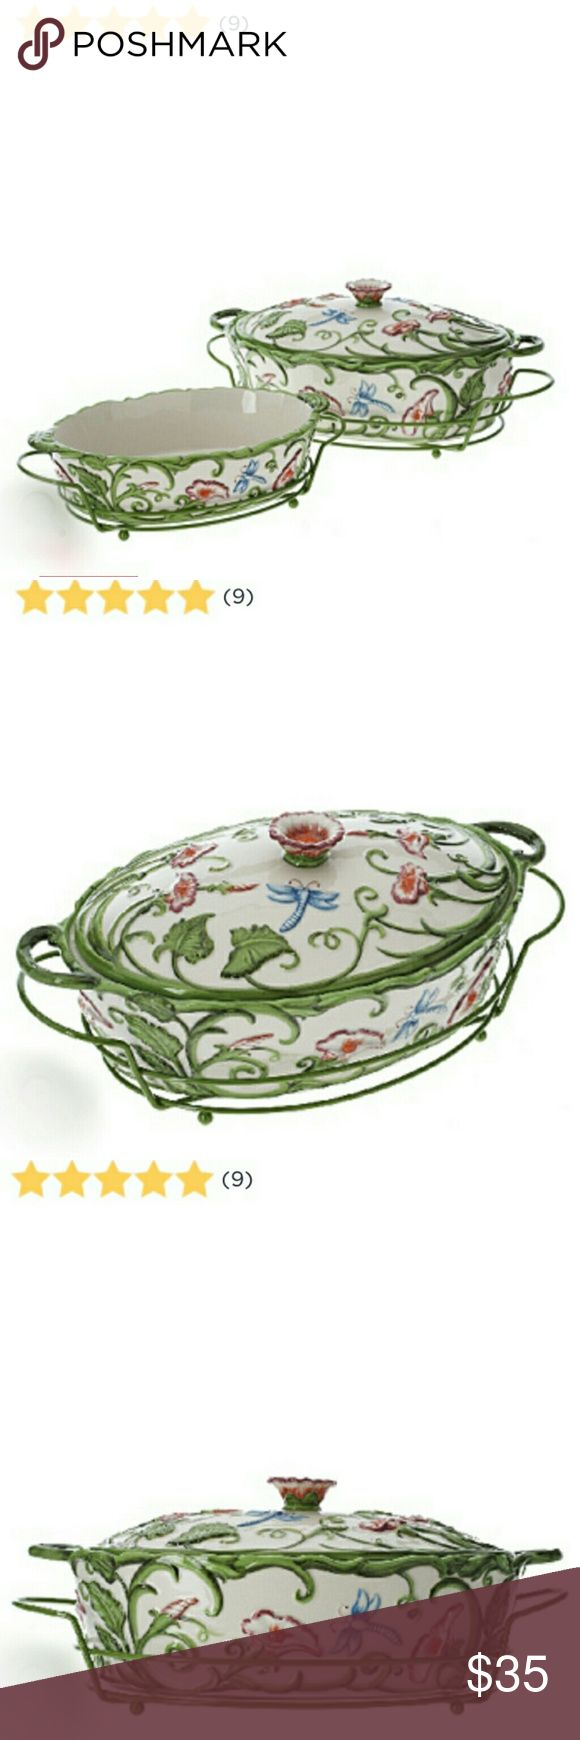 """2 Temptations Dragonfly Bakers w/Metal Racks/Spoon NEW W/O BOX Add a touch of elegance to your home with this stylish set of Temp-tations bakeware. Keep your kitchen table safe and your meals hot with the included lids and wire racks.  Hand-painted Dragonfly pattern Ceramics are dishwasher-, microwave-, refrigerator-, and freezer-safe; oven-safe to 500F Approximate measurements:  Large baker 13-7/8""""L x 8-3/8""""W x 5-3/8""""H;  Small baker 10-3/8""""L x 6-3/8""""W x 2-5/8""""H;  Spoon 12-1/2""""L x 2-7/8""""H…"""